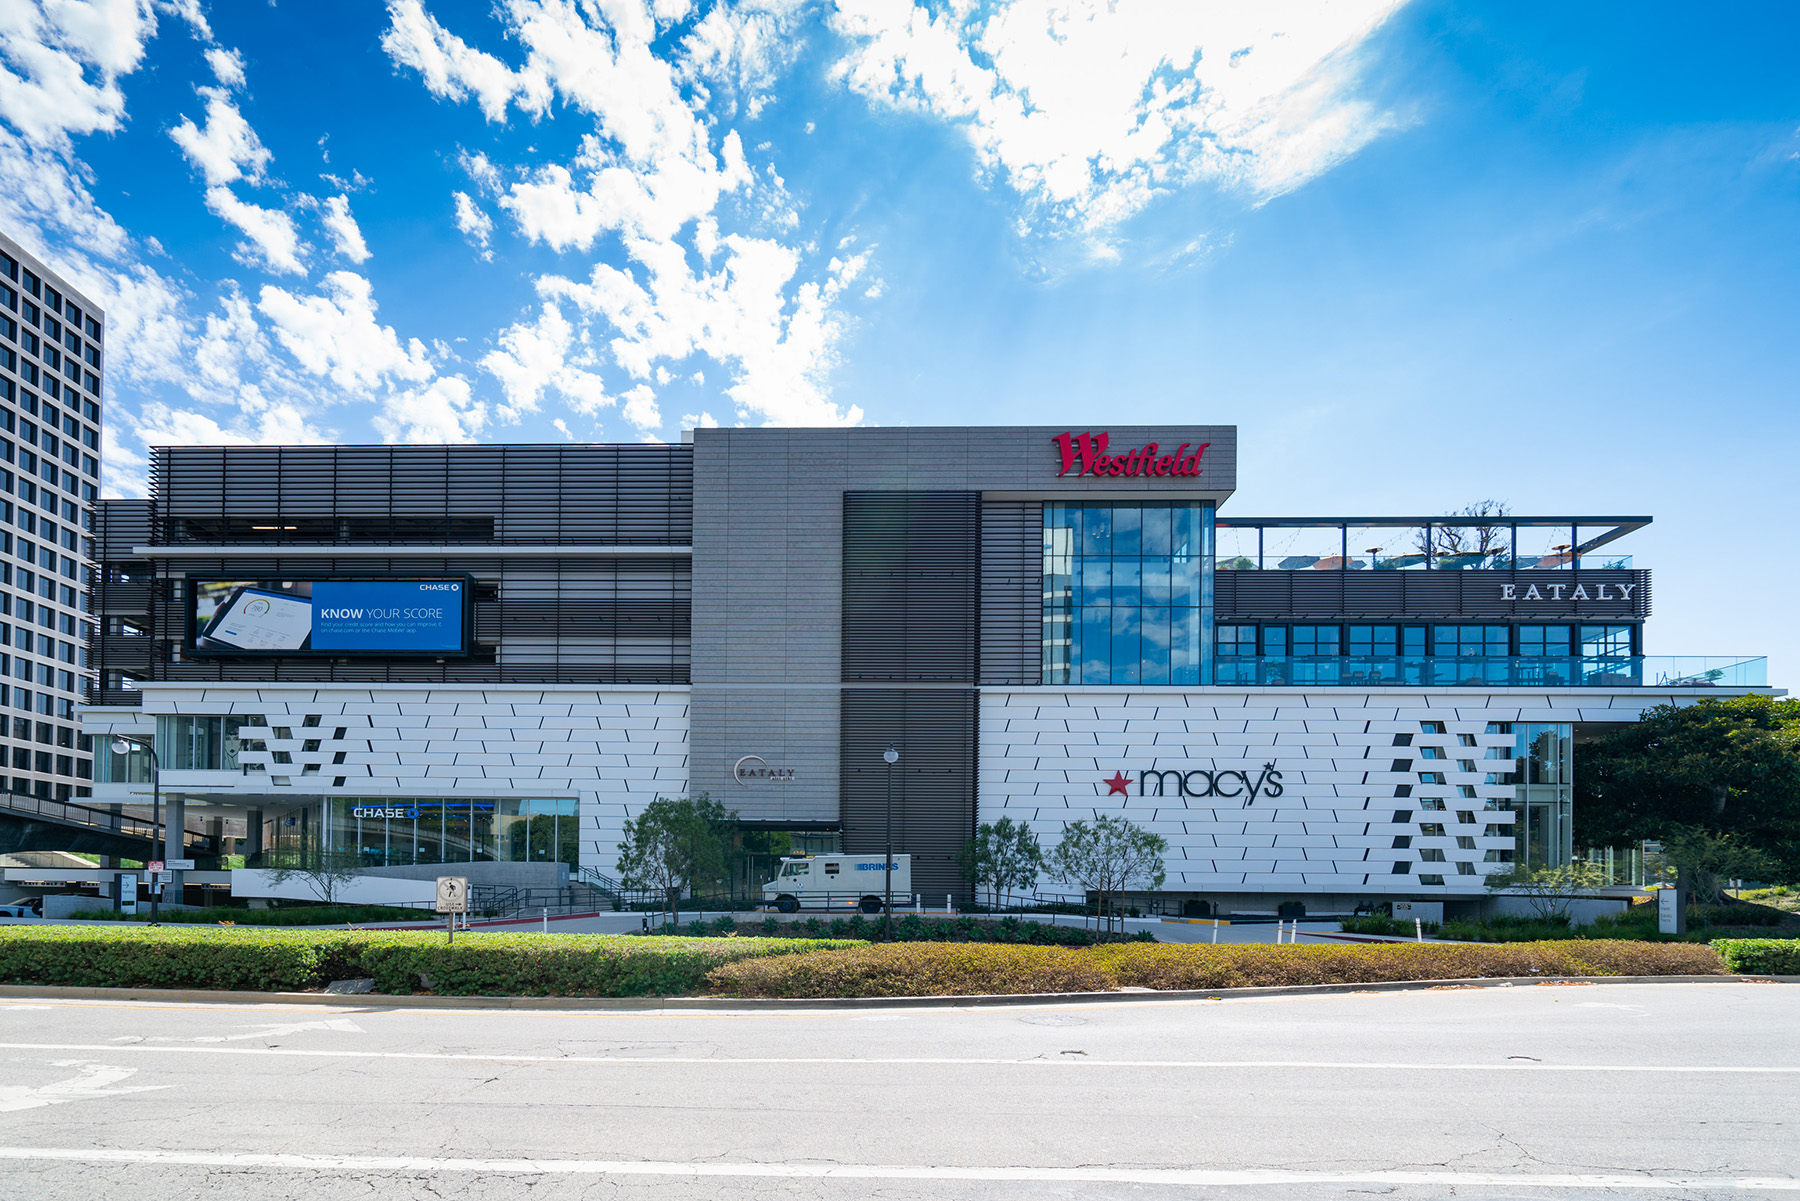 Unibail-Rodamco-Westfield said it is evaluating whether to sell most of its prominent U.S. shopping mall assets as demand falls across the industry. (Getty Images)